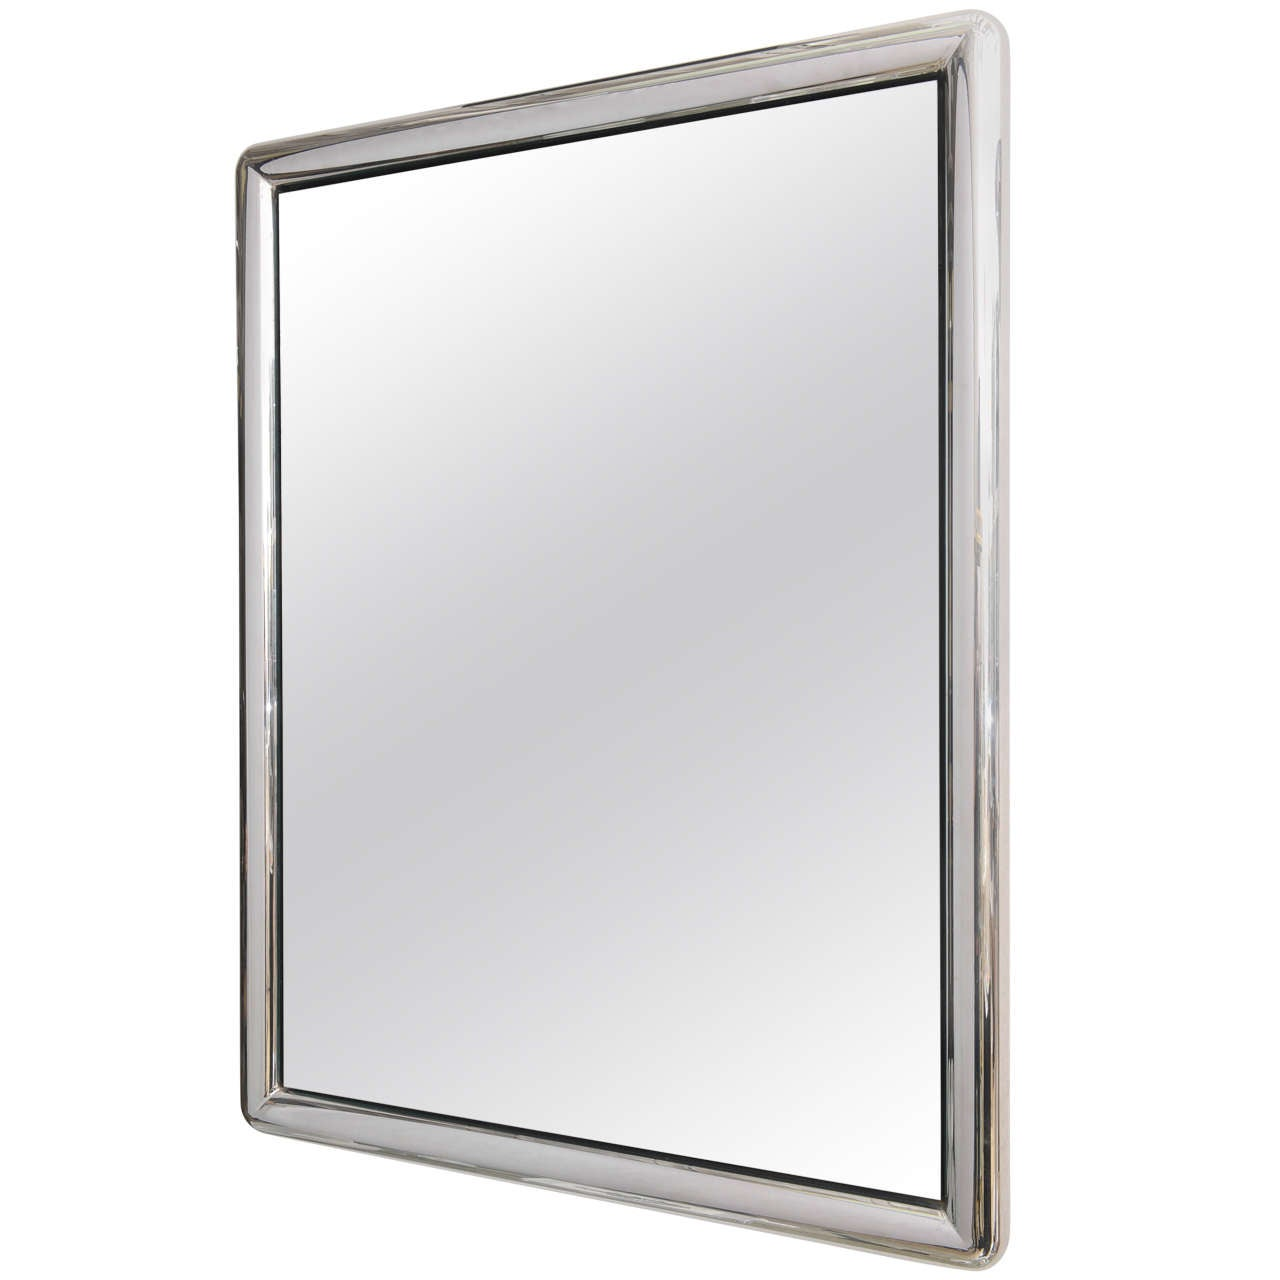 Chrome framed wall mirror at 1stdibs Polished chrome bathroom mirrors